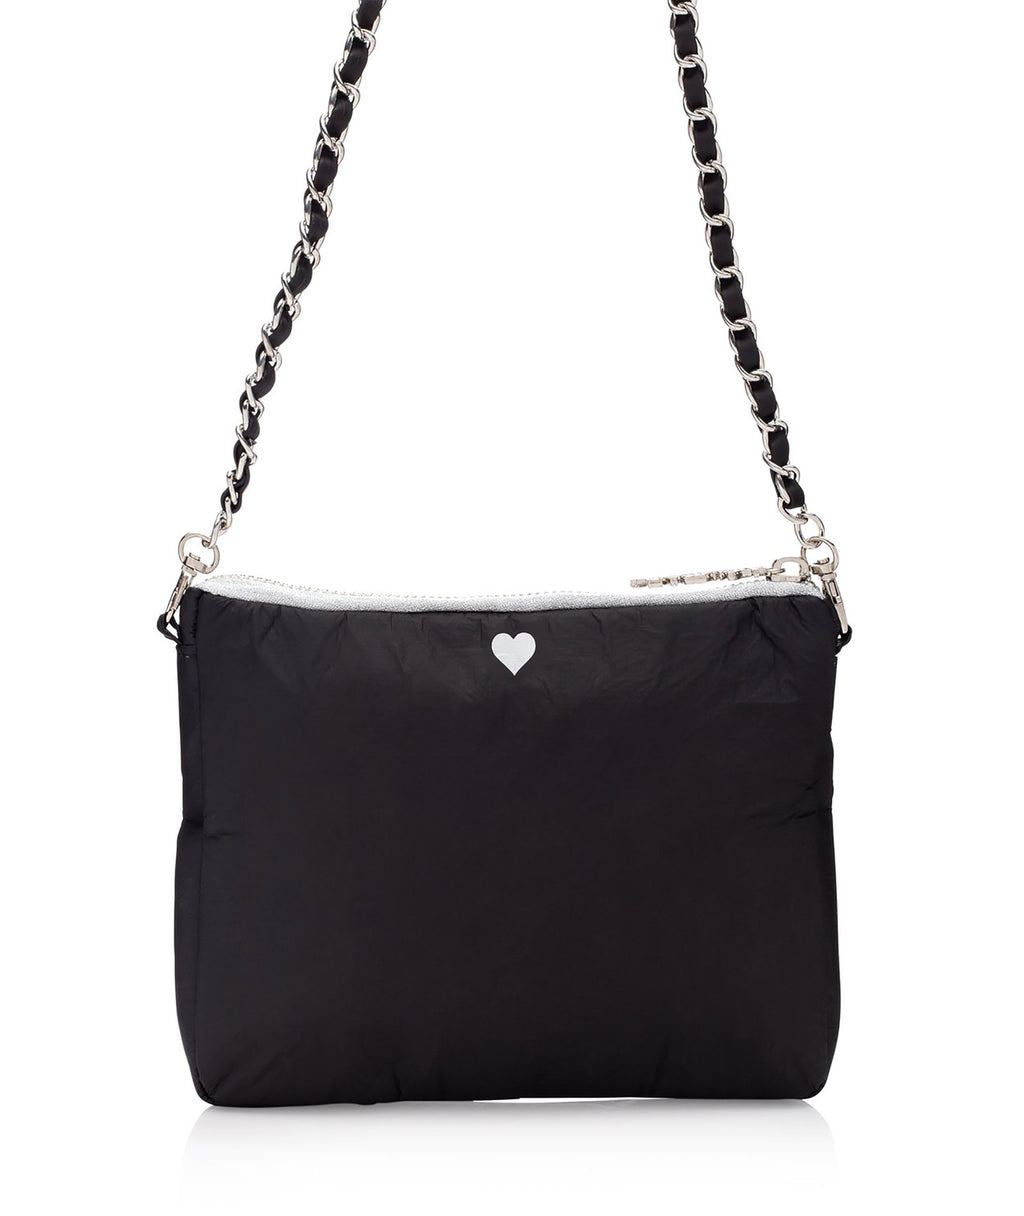 HI Love Travel Black Heart Purse